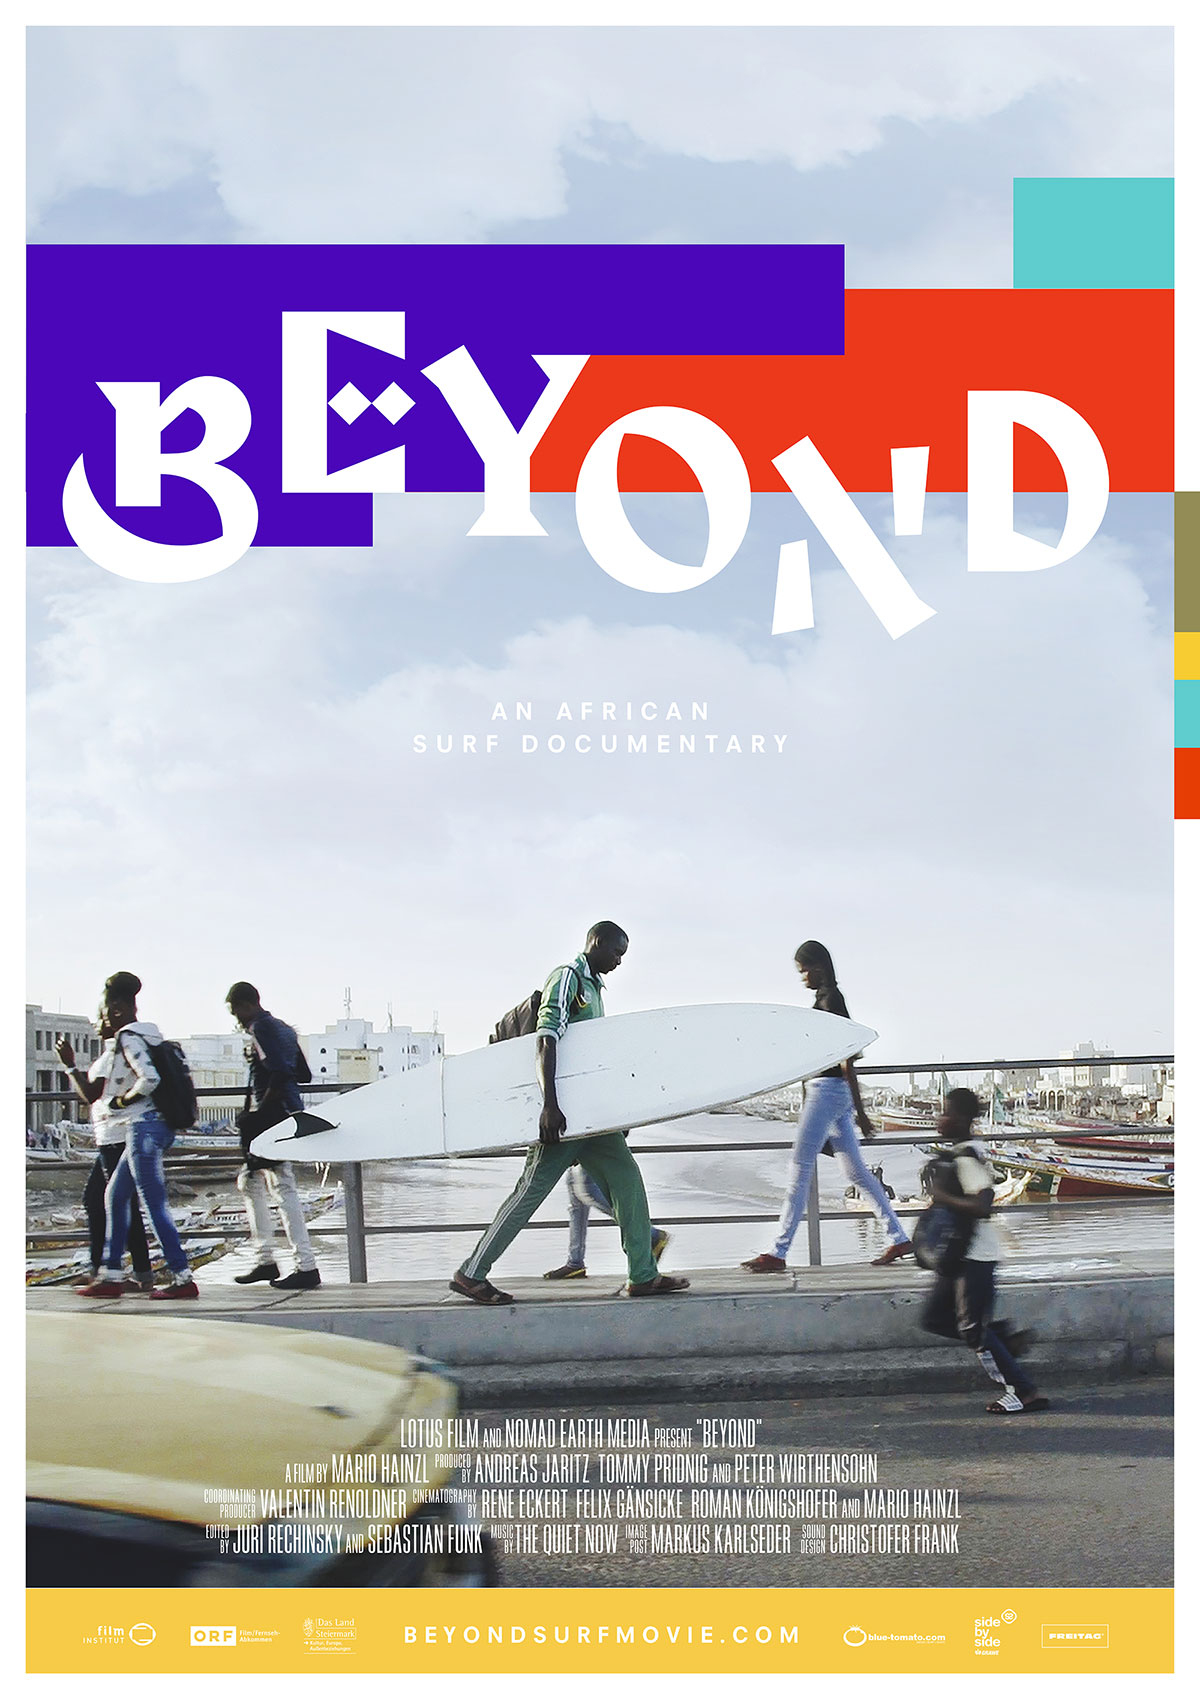 Beyond Movie Surfing Africa Senegal Gambia Morocco Mauritania Westafrica